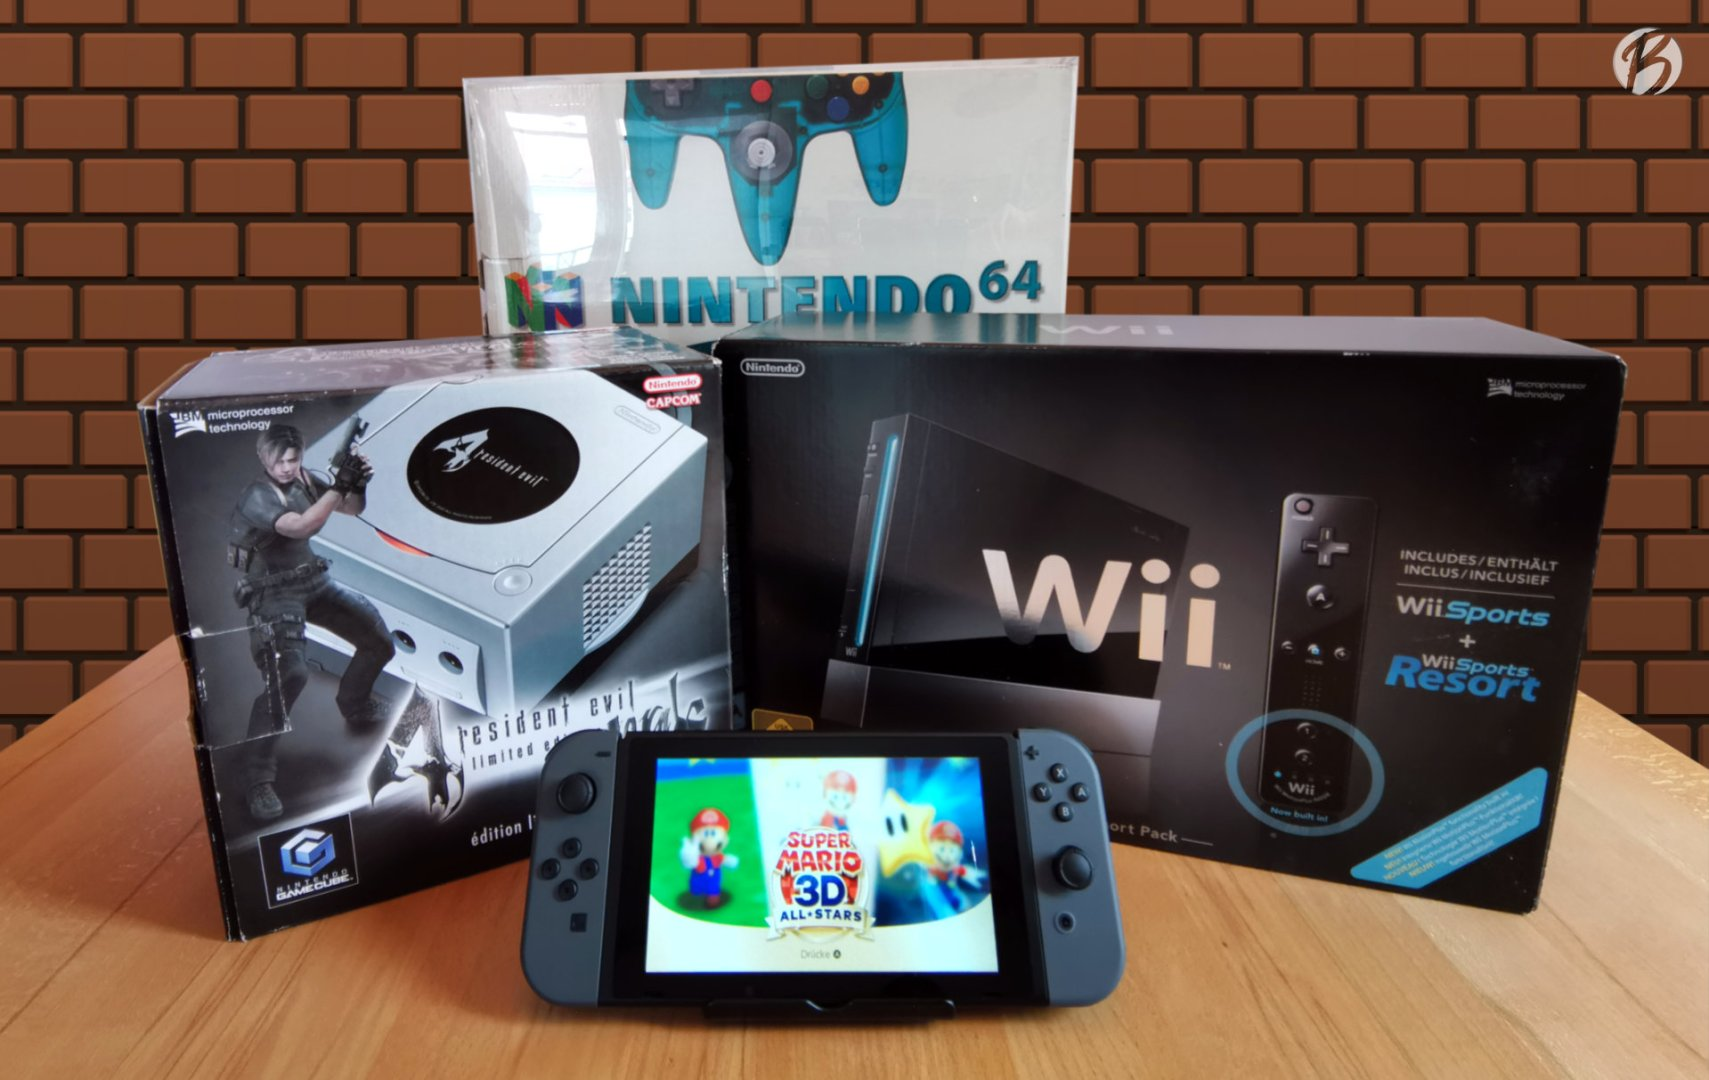 Gamecube »Resident Evil 4 Limited Edition Pack«, Nintendo Wii »Sports Resort Pack« und Nintendo 64 Ocean Blue + Nintendo Switch mit Super Mario 3D All-Stars.